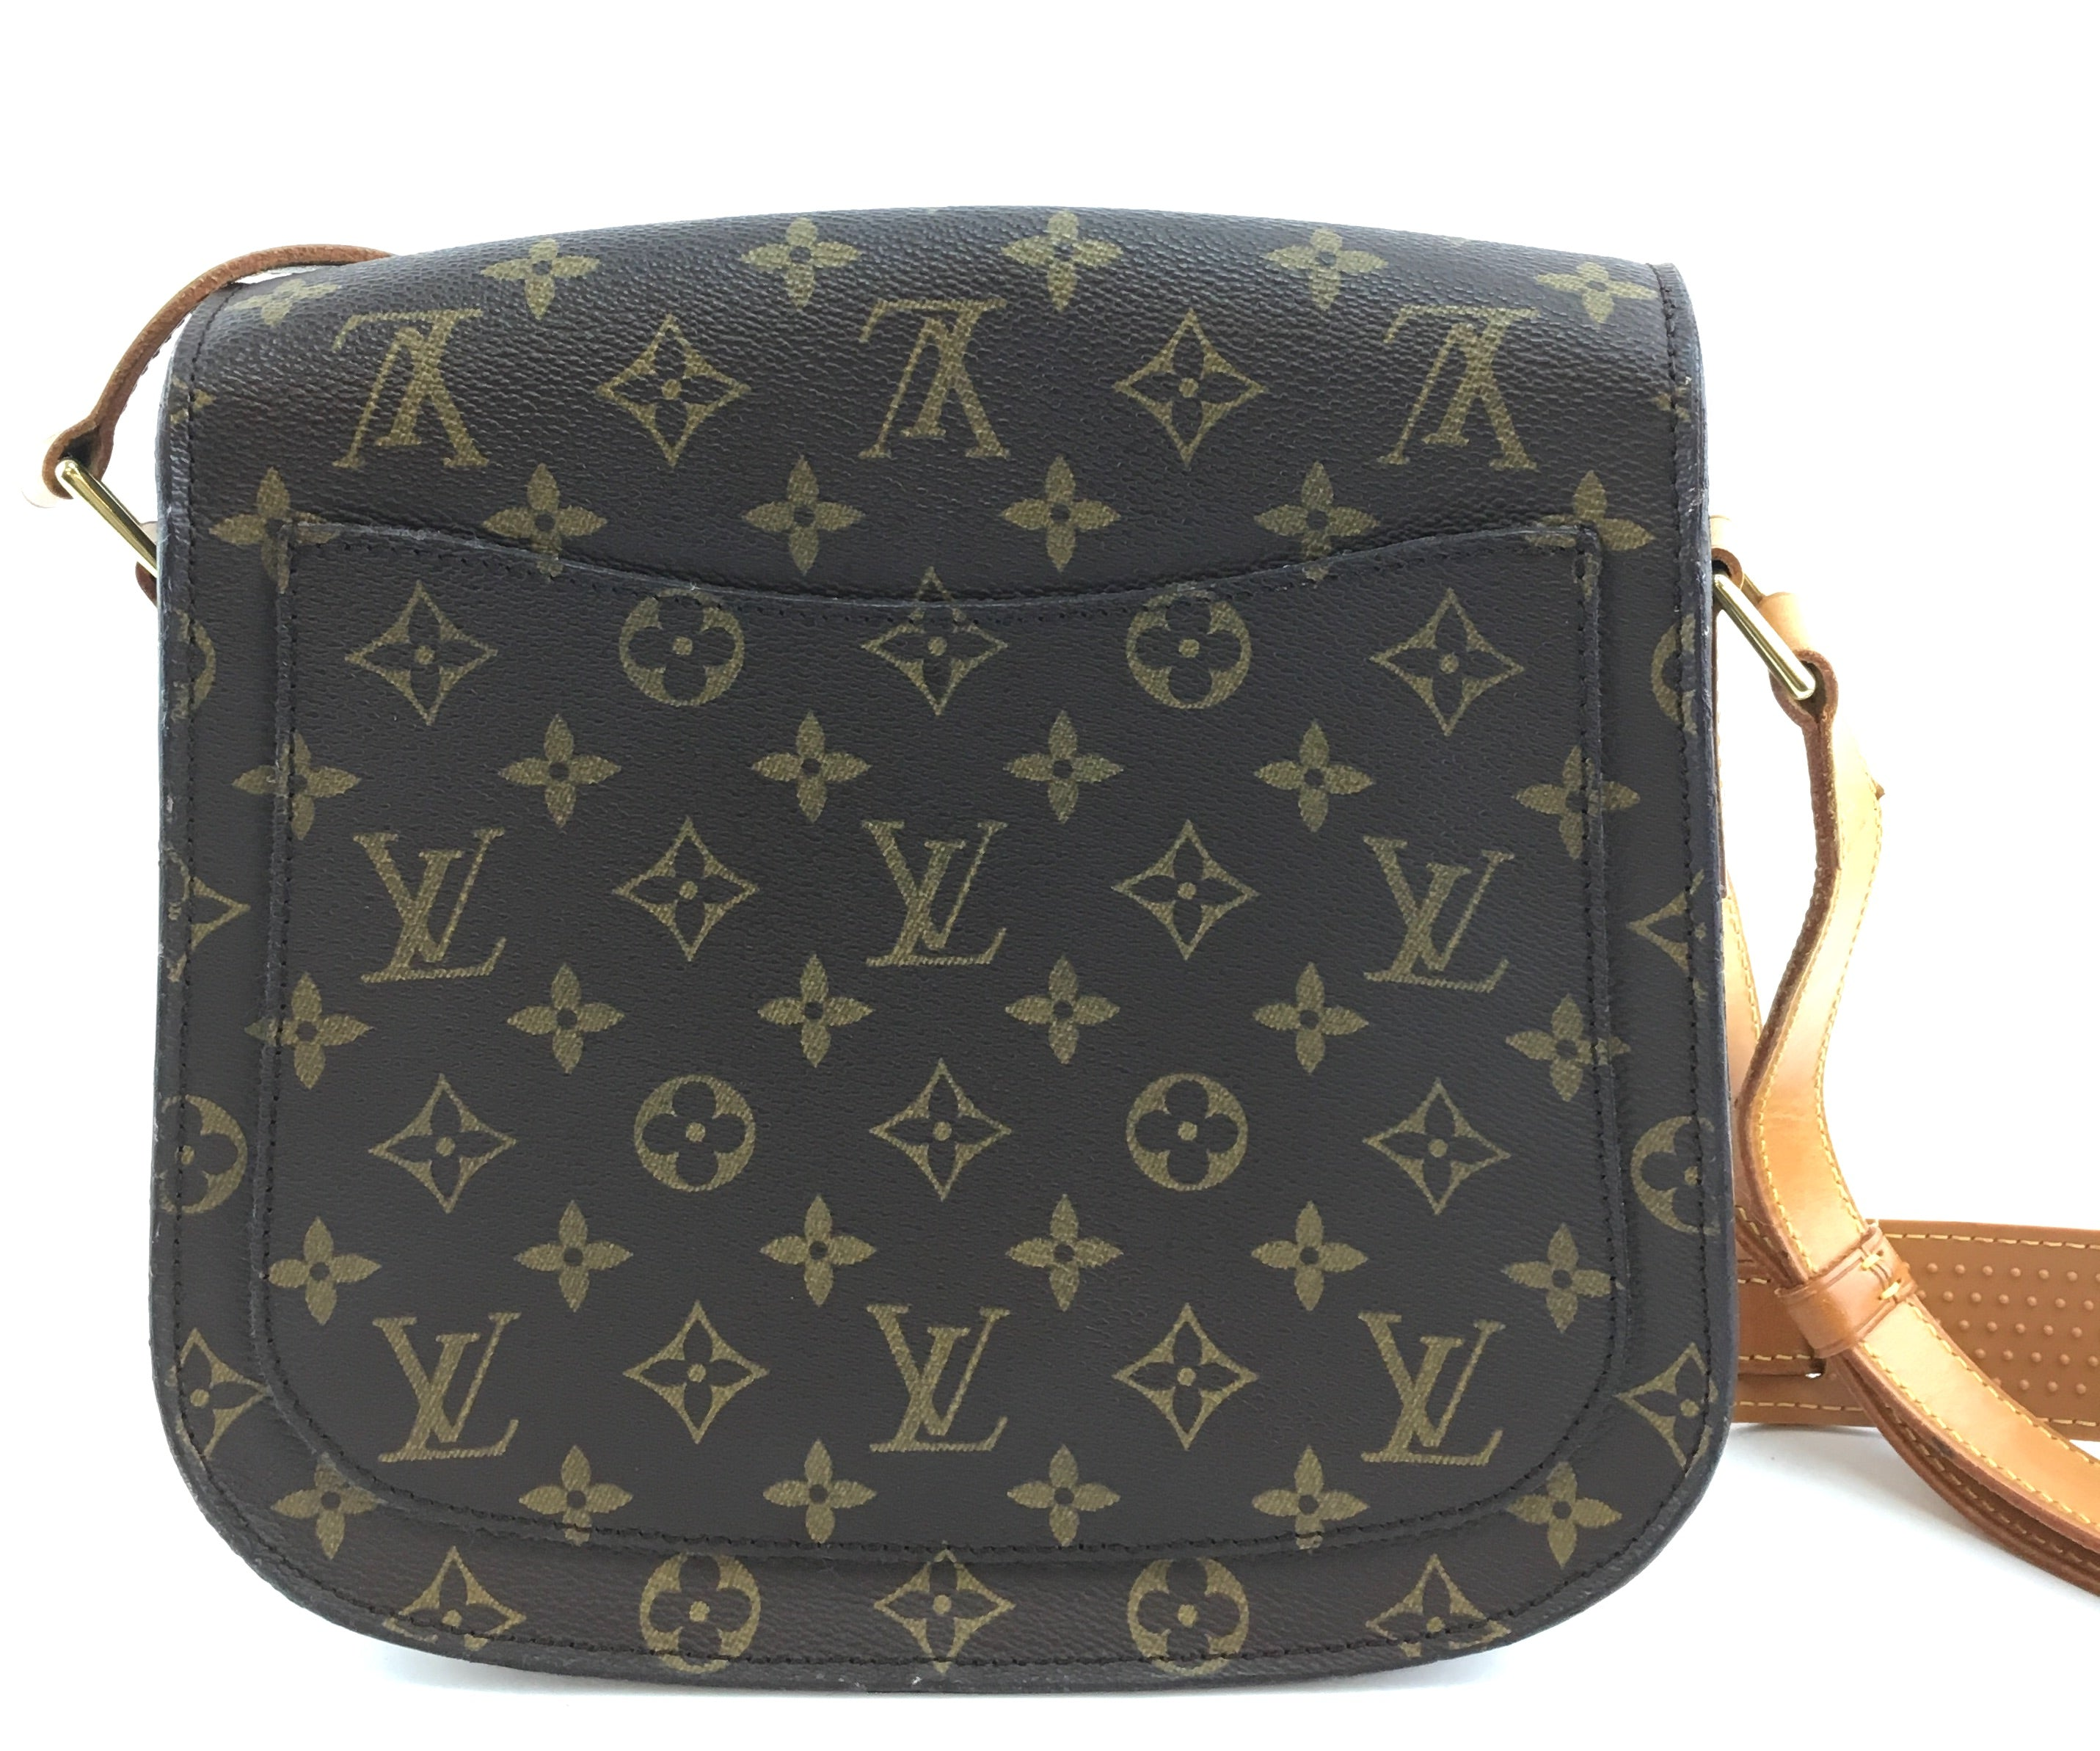 Louis Vuitton Saint Cloud GM Monogram Canvas